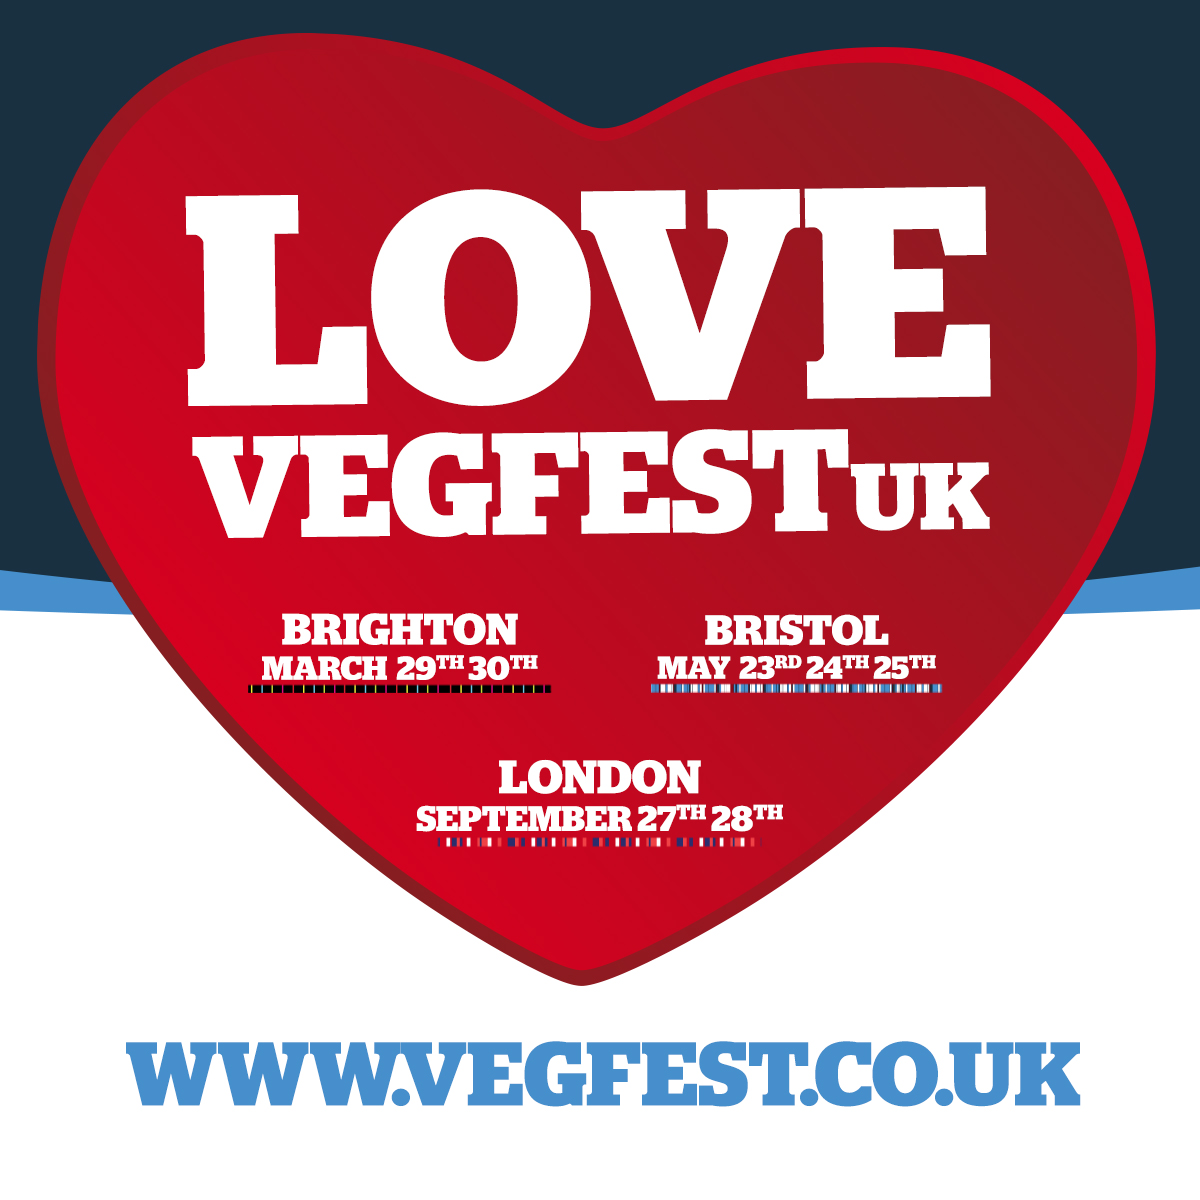 Vegfest UK:  Brighton, Bristol, London, and More!